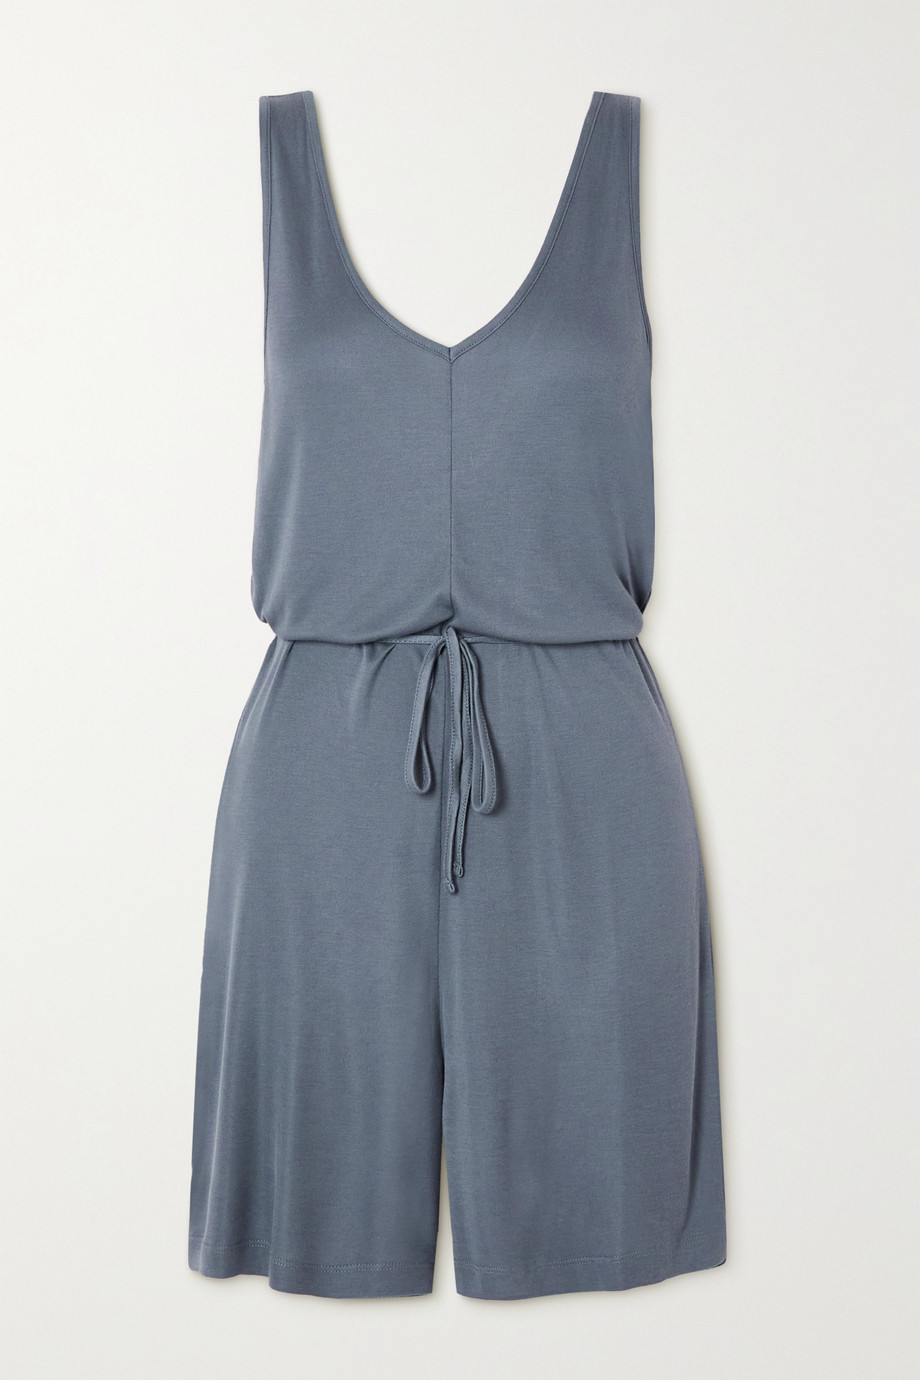 Ninety Percent + NET SUSTAIN belted ECOVERO-jersey playsuit